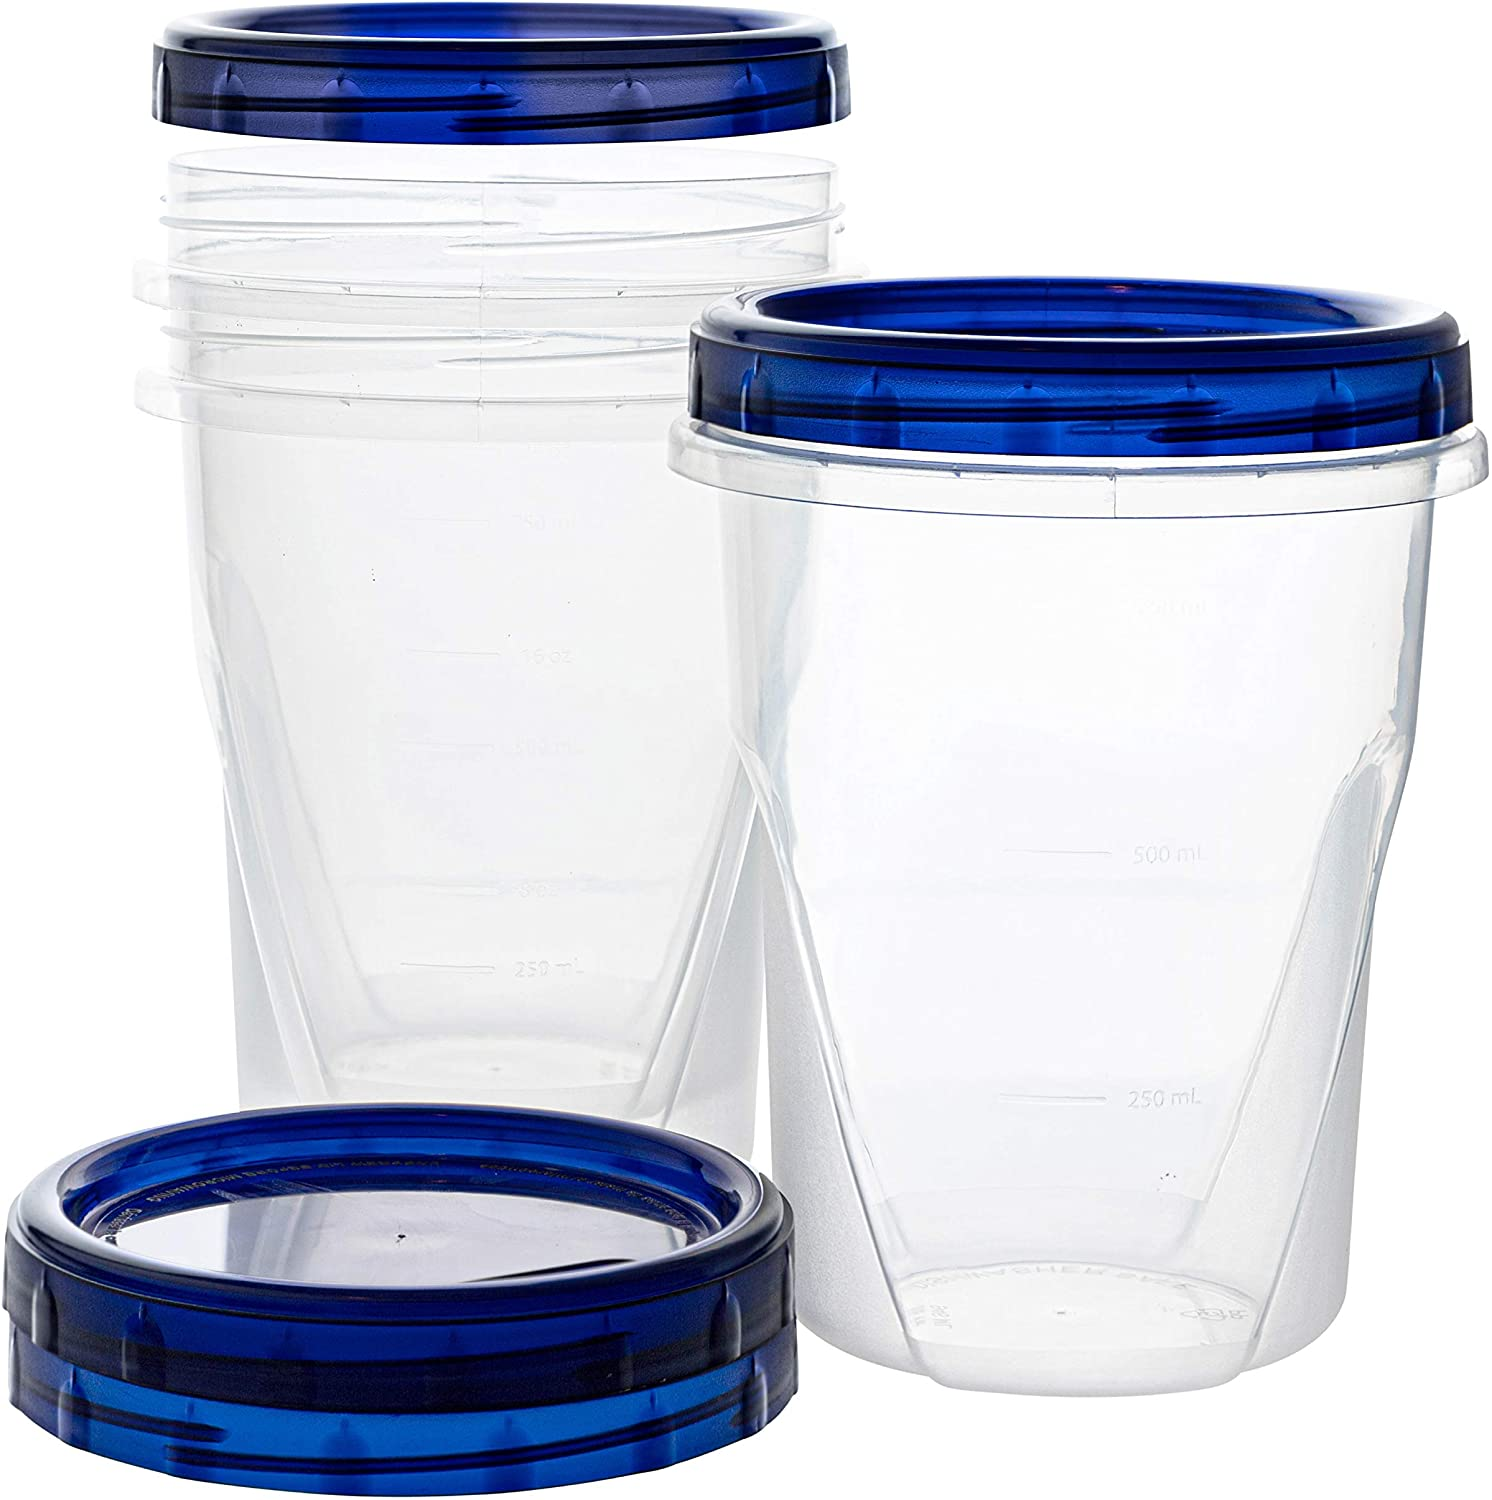 [32 oz 3 Pack]Twist Top Deli Containers Clear bottom With blue Top Twist on Lids Reusable, Stackable, Food Storage Freezer Container